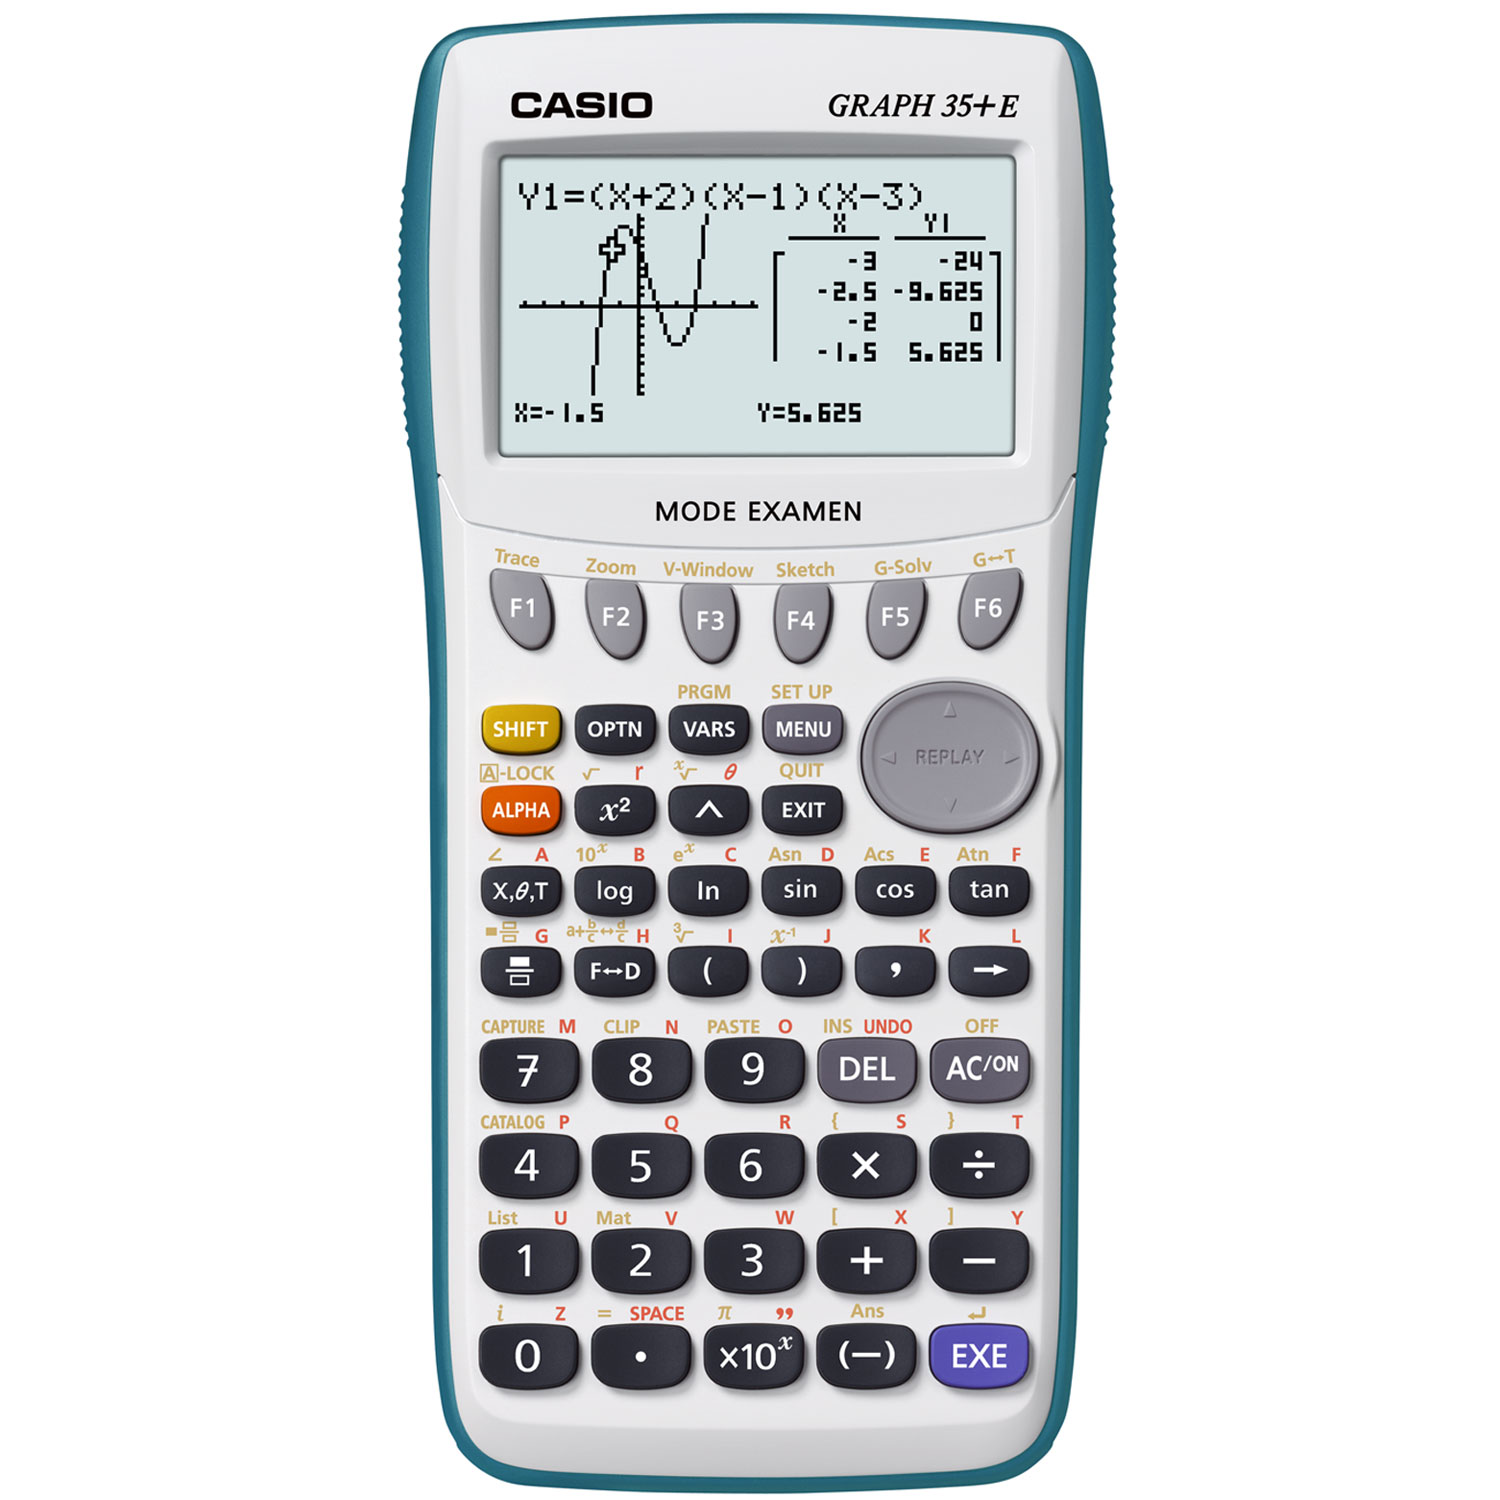 casio graph 35 e calculatrice casio sur. Black Bedroom Furniture Sets. Home Design Ideas